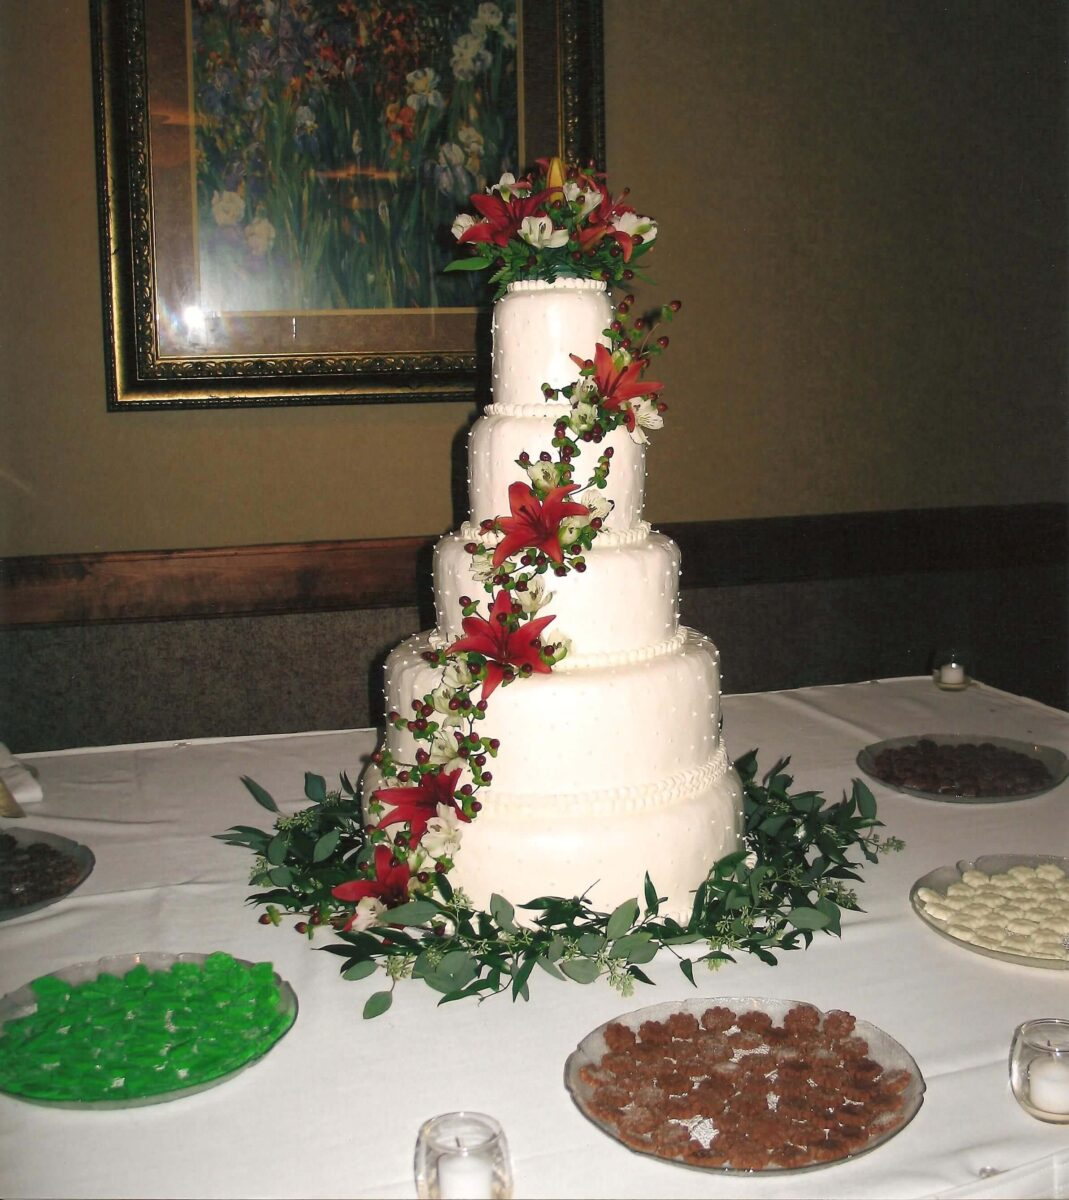 White Frosted 5 Tier Wedding Cake with Orange Lillies and Greenery